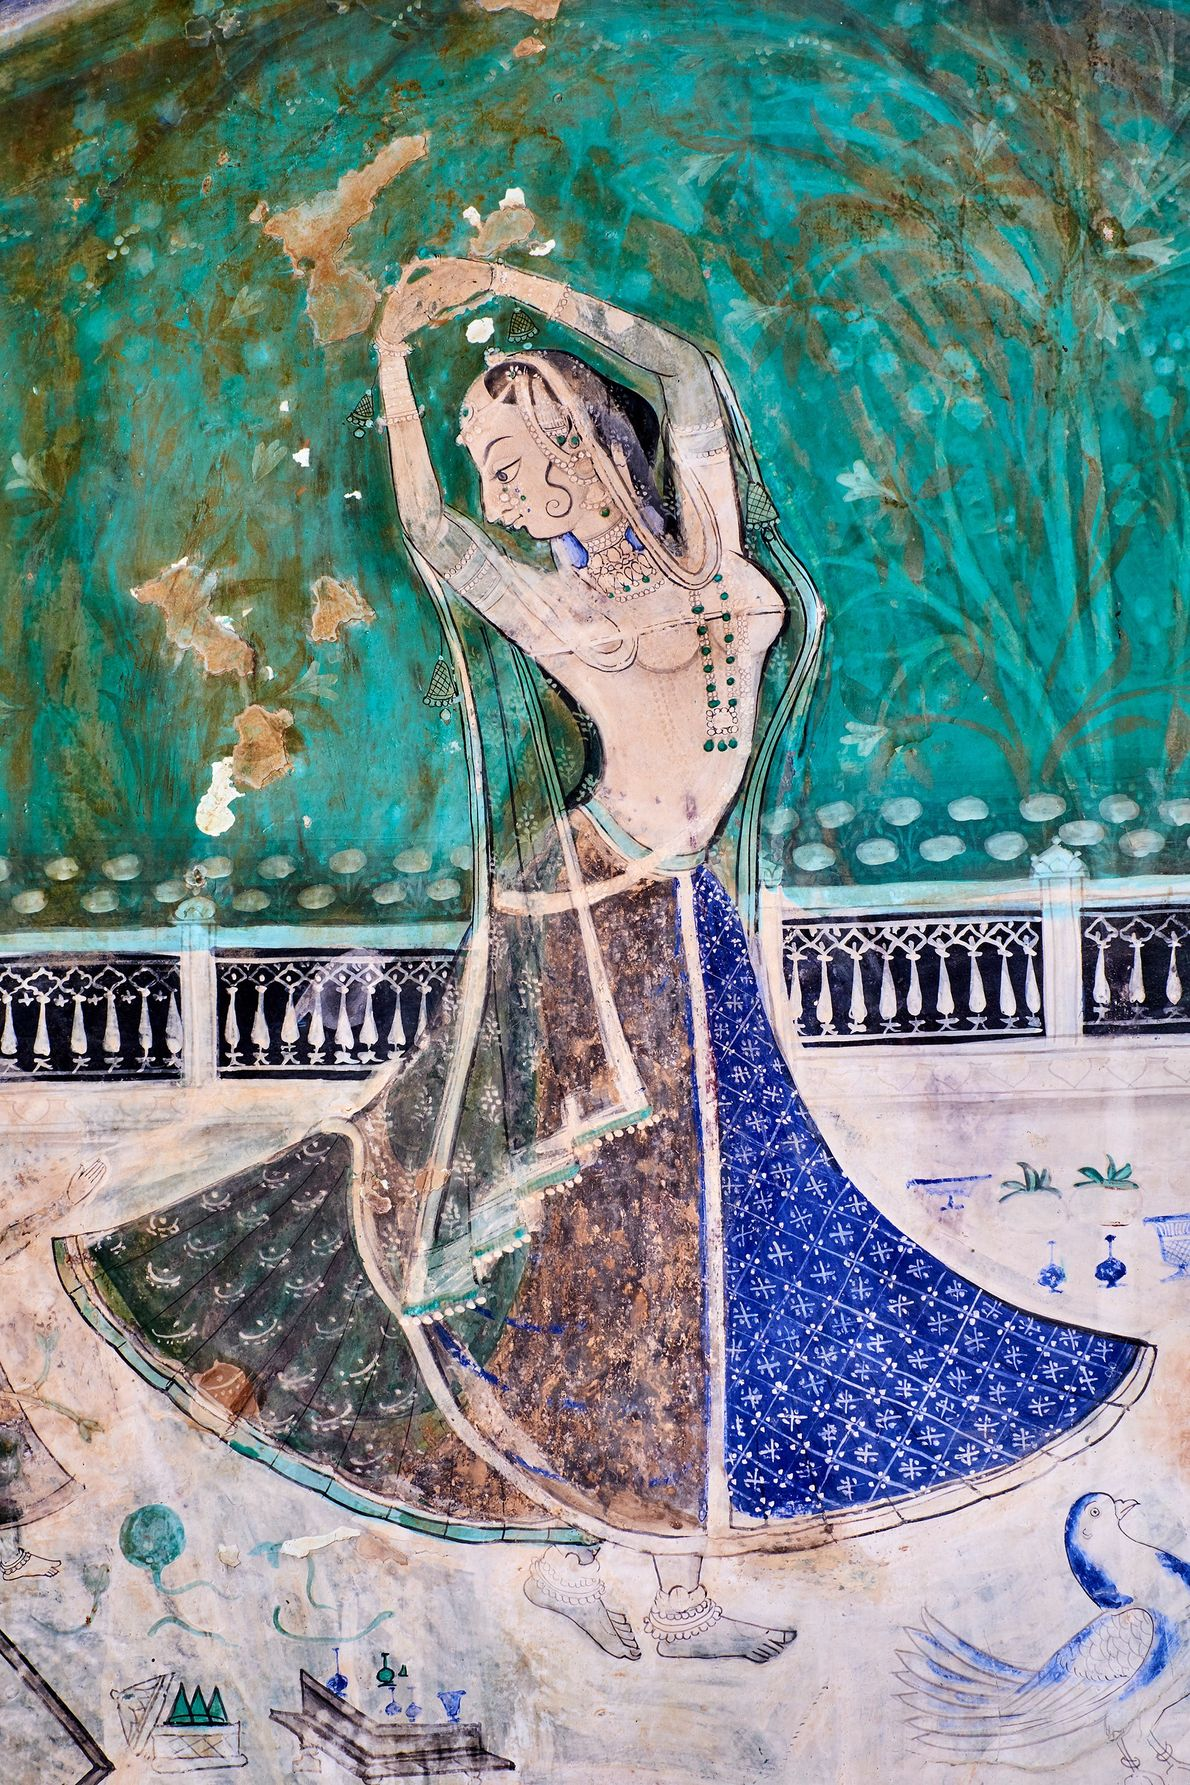 Inside Rajasthan's Garh Palace, the walls of the Chitrashala section are festooned with colorful 18th-19th century ...